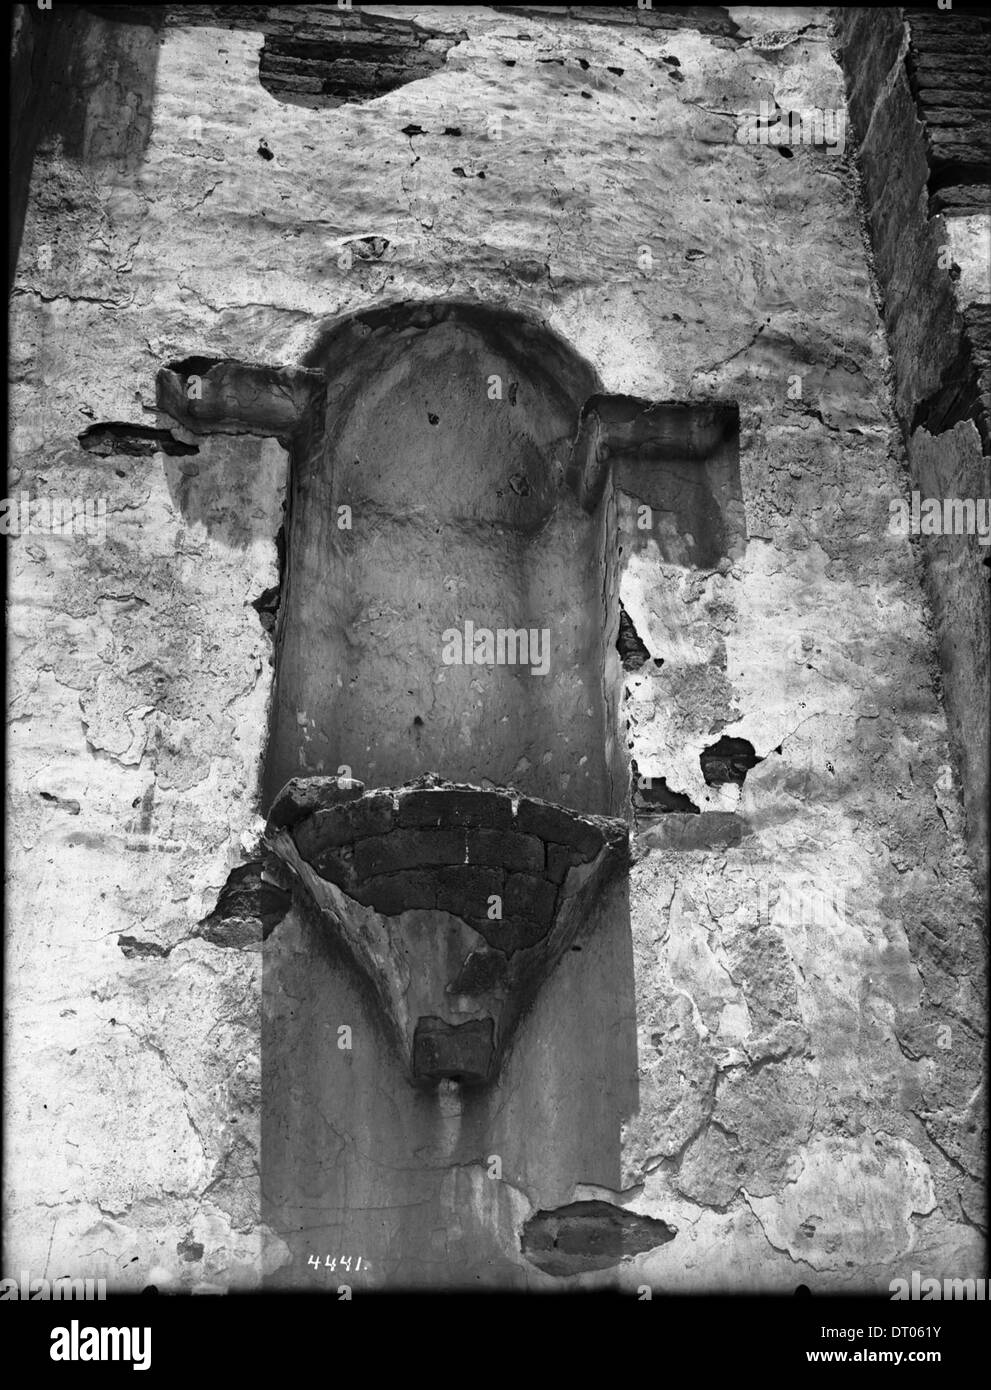 Bevelled brick used for support at Mission San Luis Rey de Francia, California, ca.1905 - Stock Image